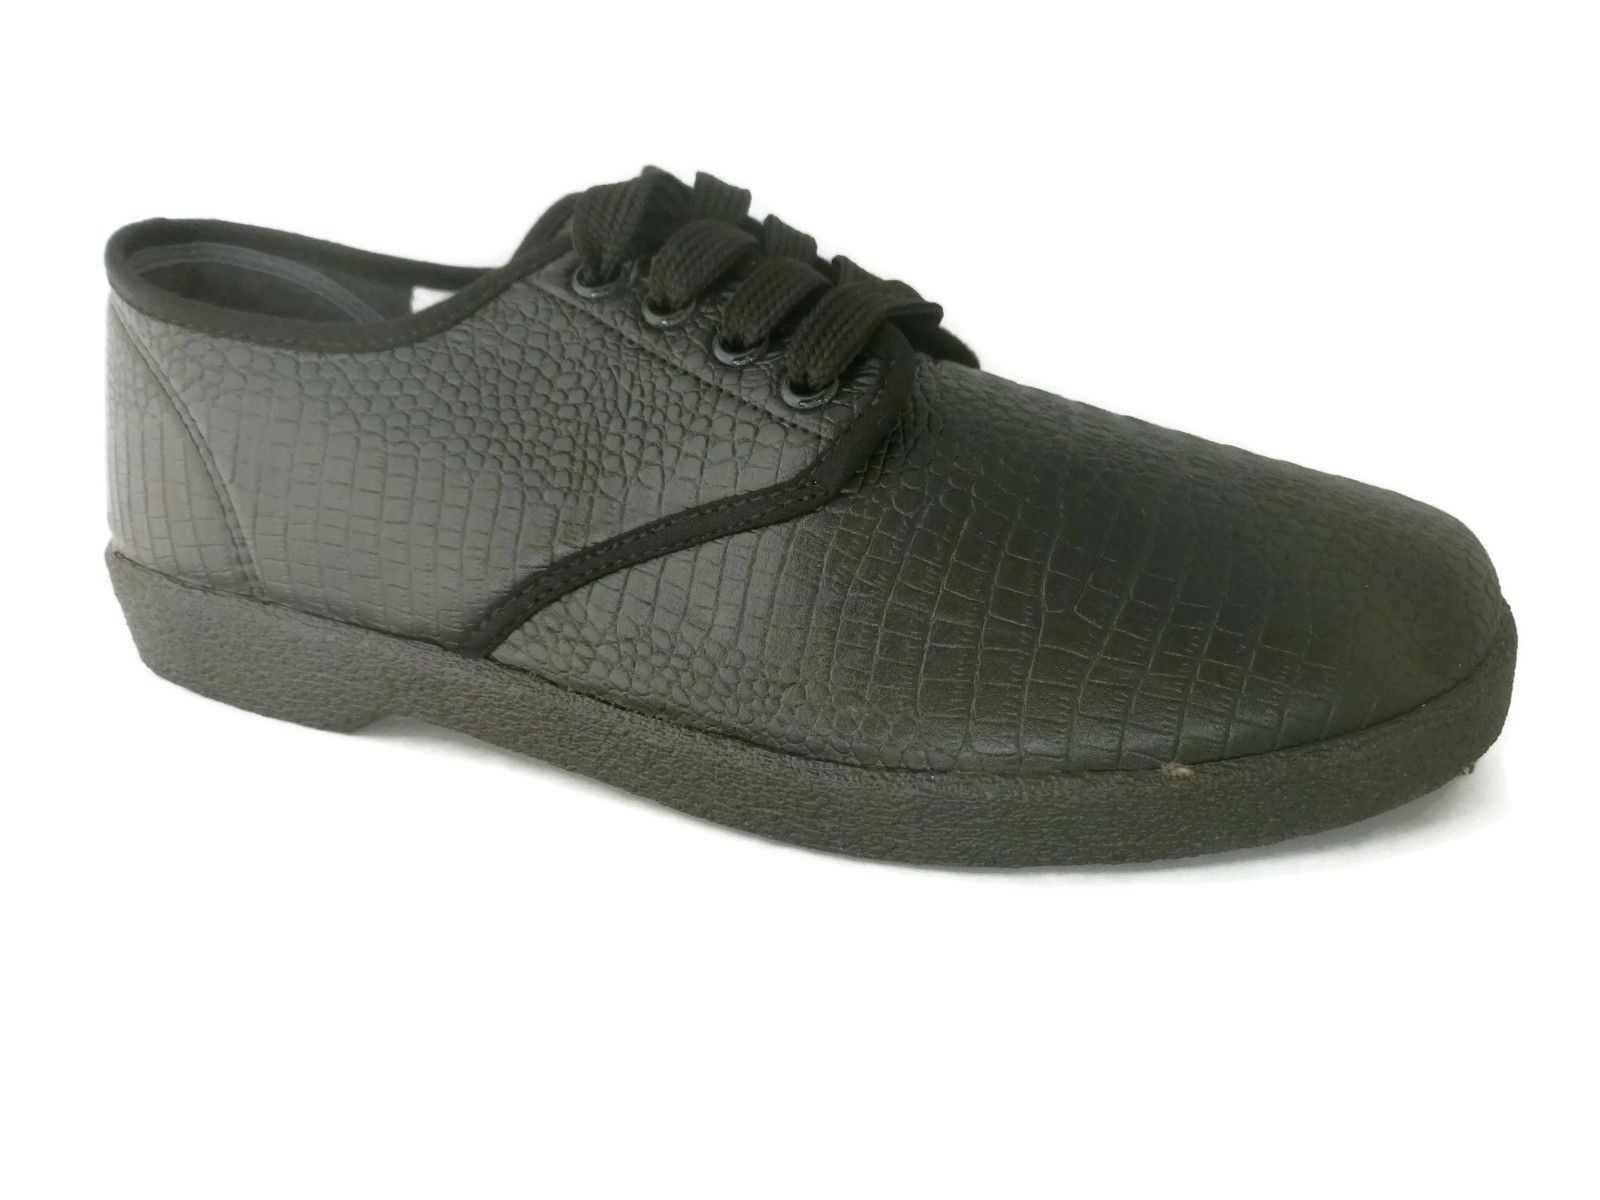 Men's Alligator Oxford Shoe by Zig Zag. Black. Sizes 6.5-13-  BRAND NEW STYLE